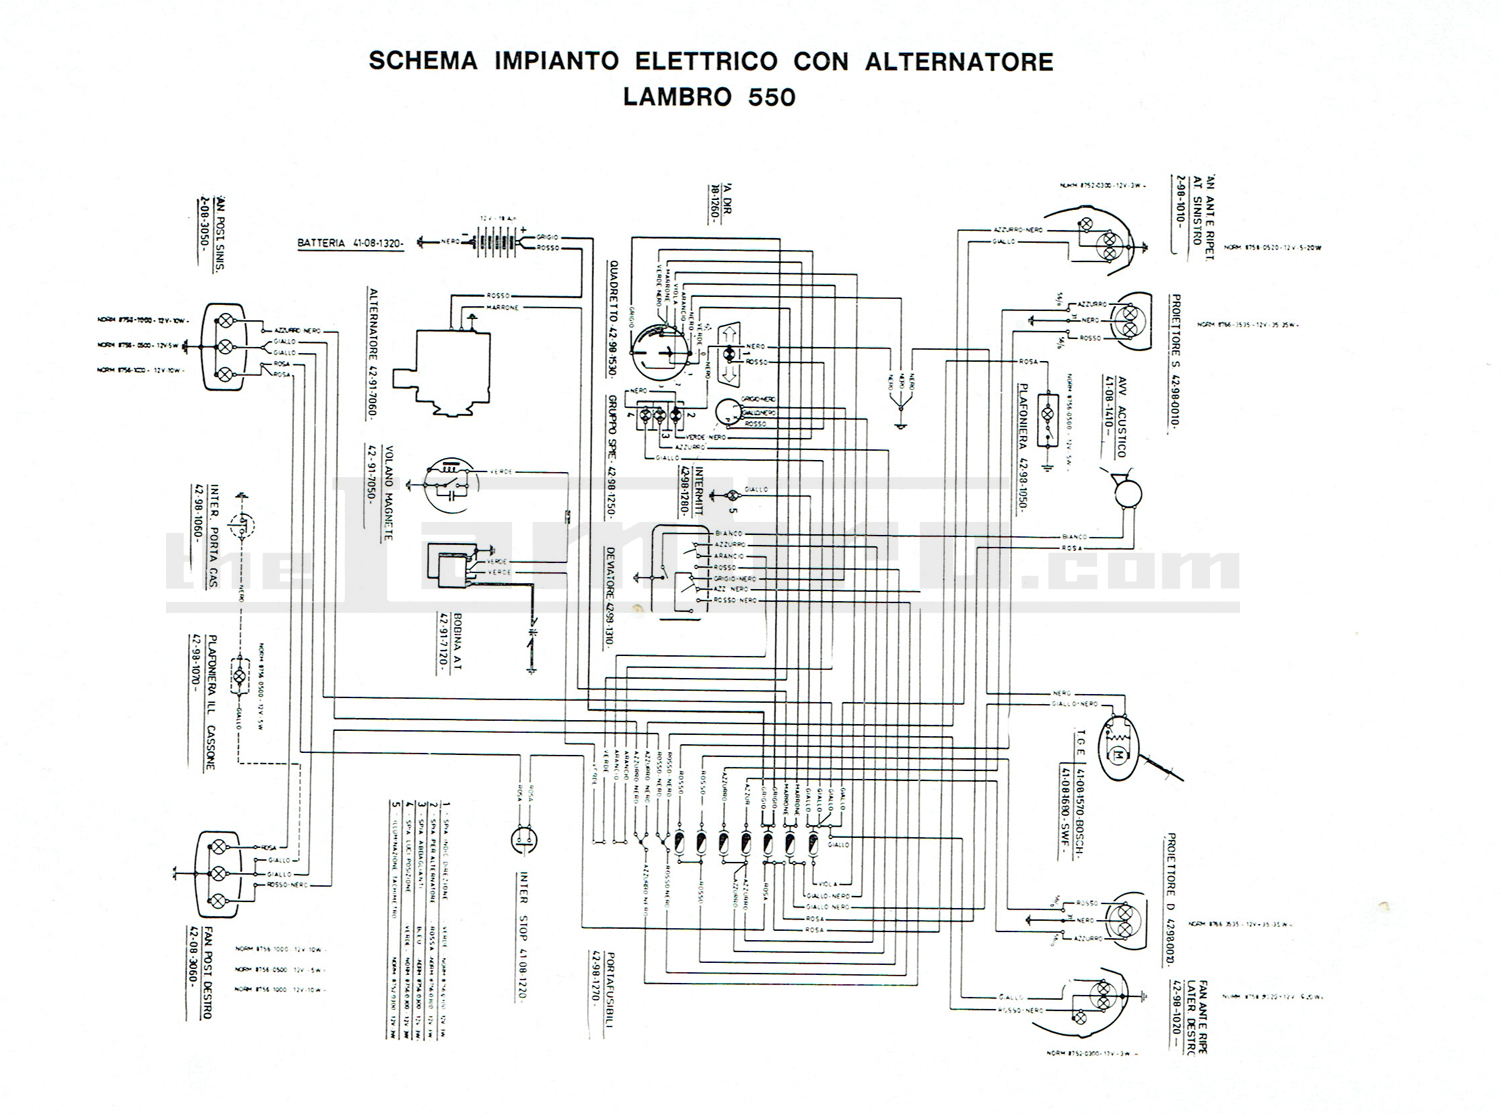 Electrics Fig Back Of Typical Alternator Illustrating Wiring Lambro 450 With